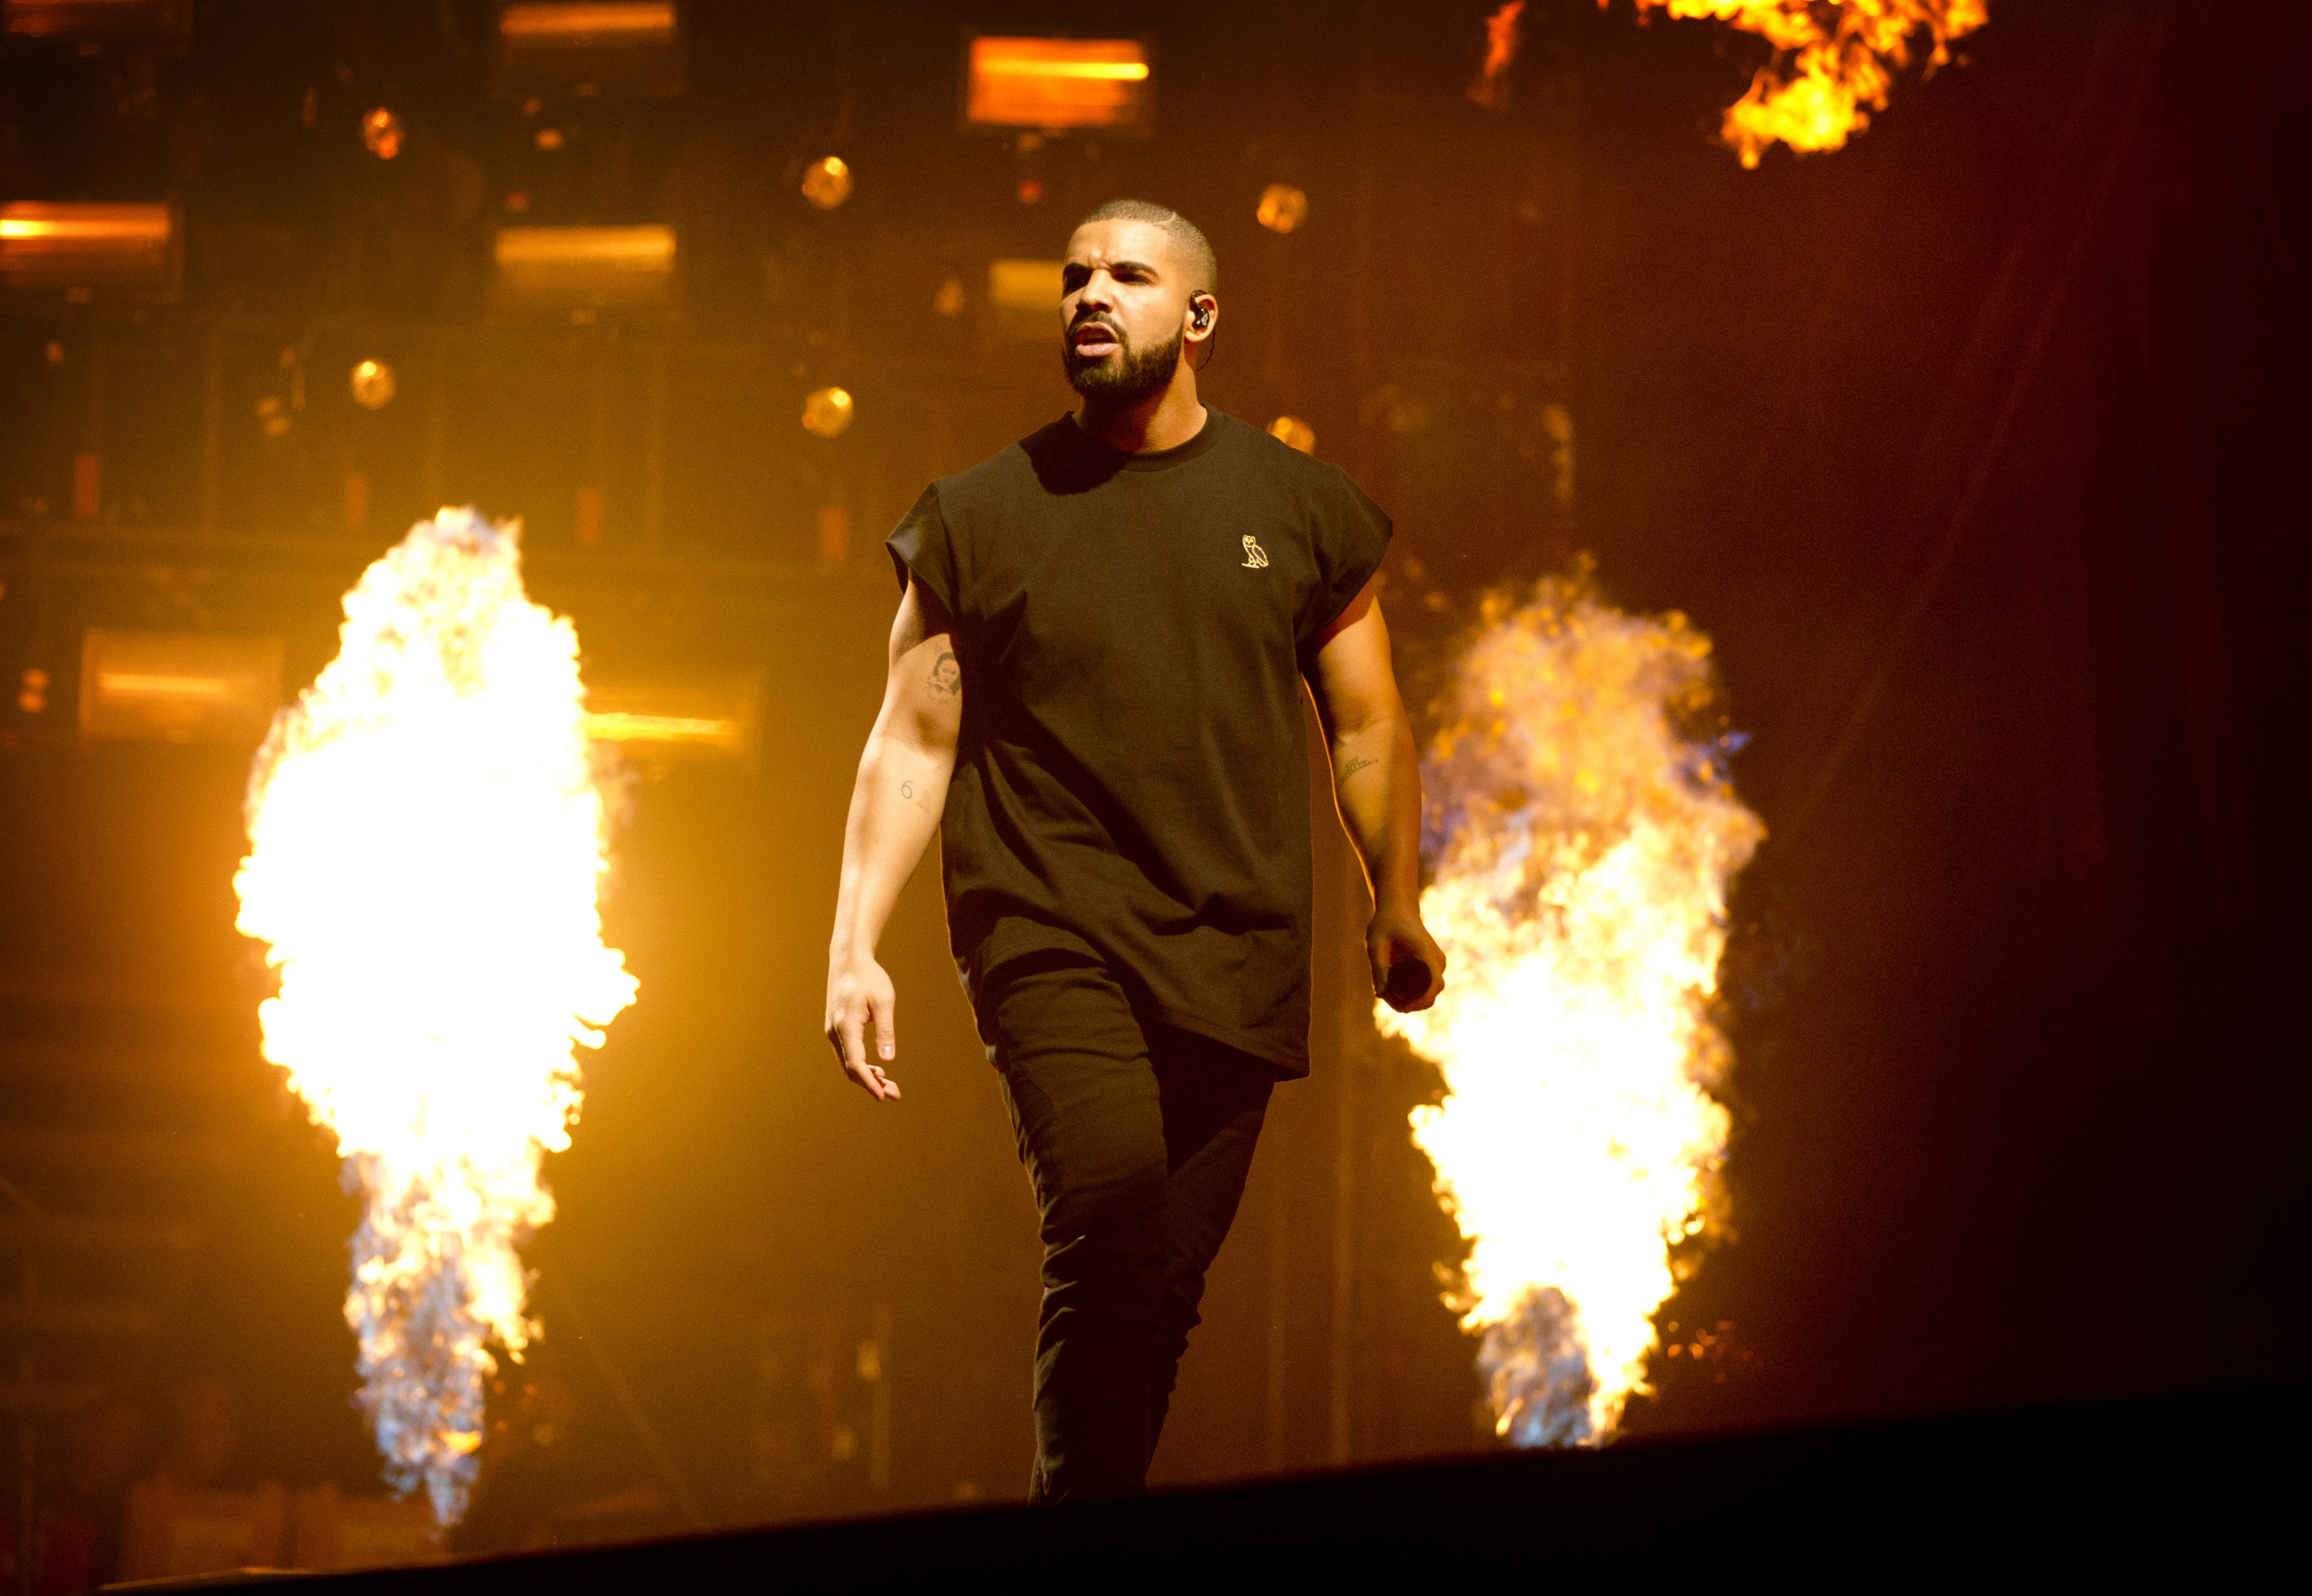 Drake Download Free Backgrounds HD